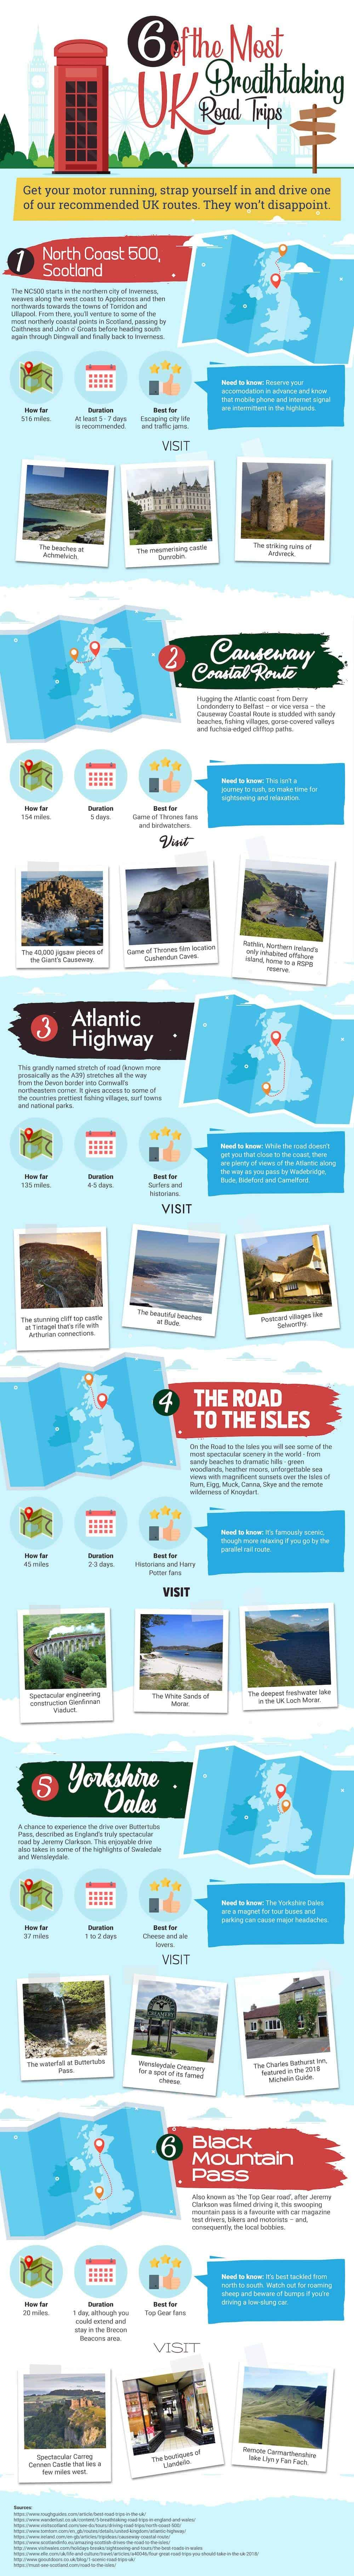 6 of the Most Memorable Road Trips in the UK